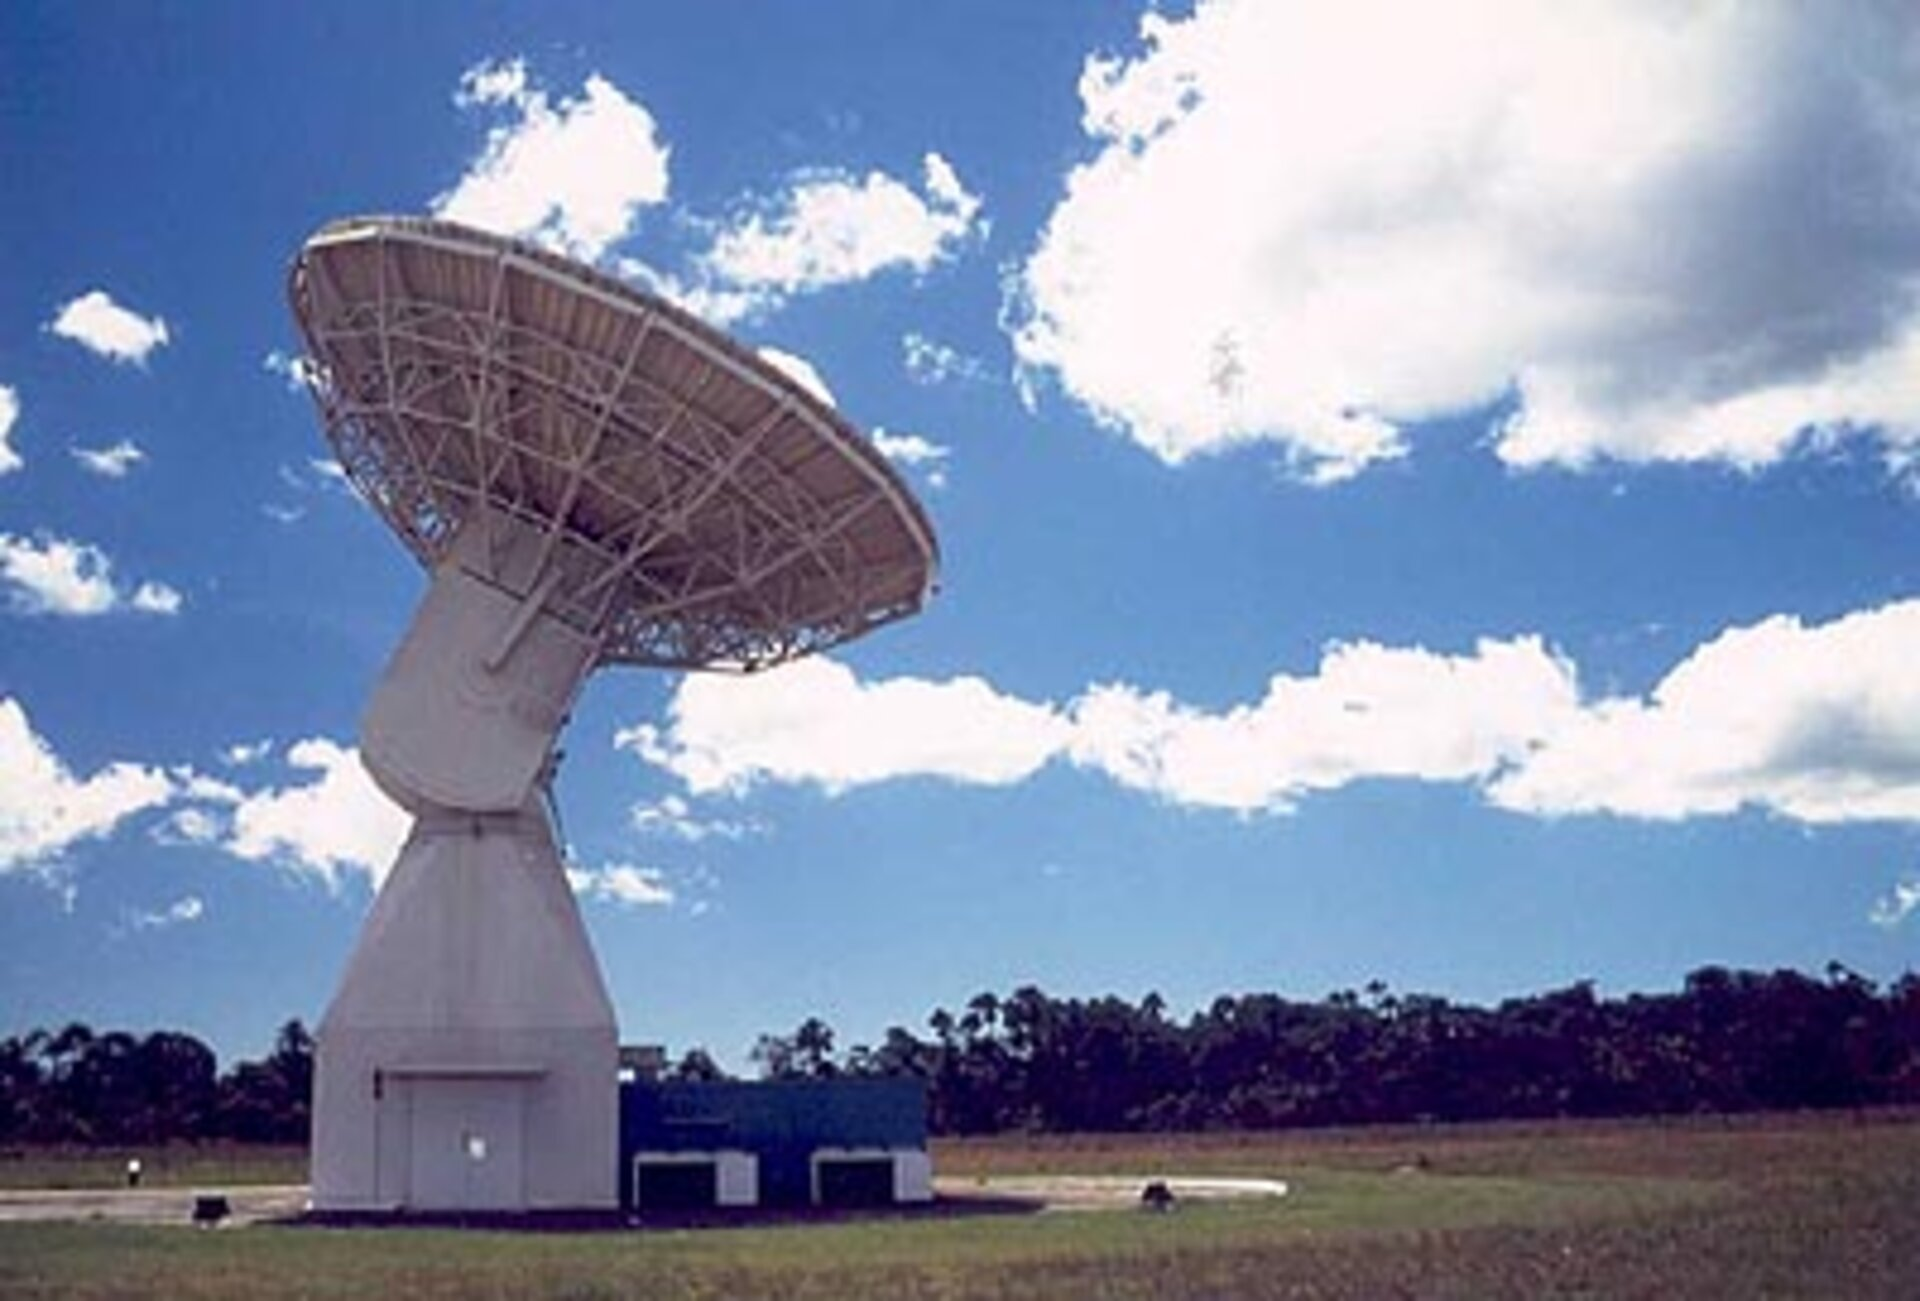 15m antenna at Kourou station